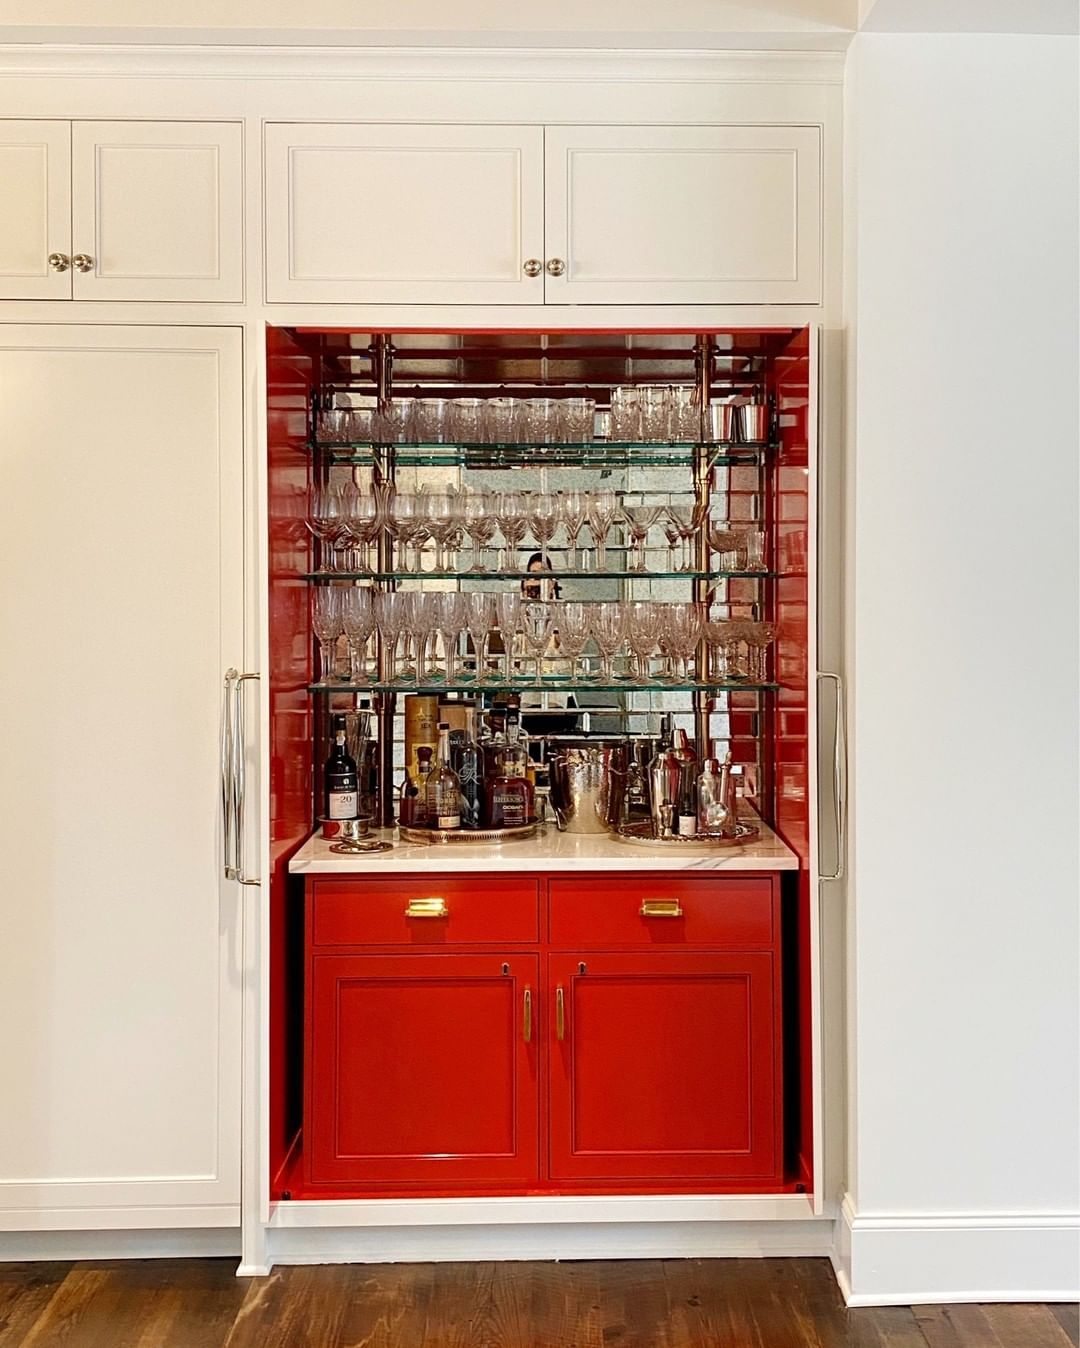 Anne Wagoner Interiors On Instagram Our Clients Love Pops Of Color We Re Using Their Hidden Bar As Inspiration For The Res In 2020 Hidden Bar Bar Furniture Interior